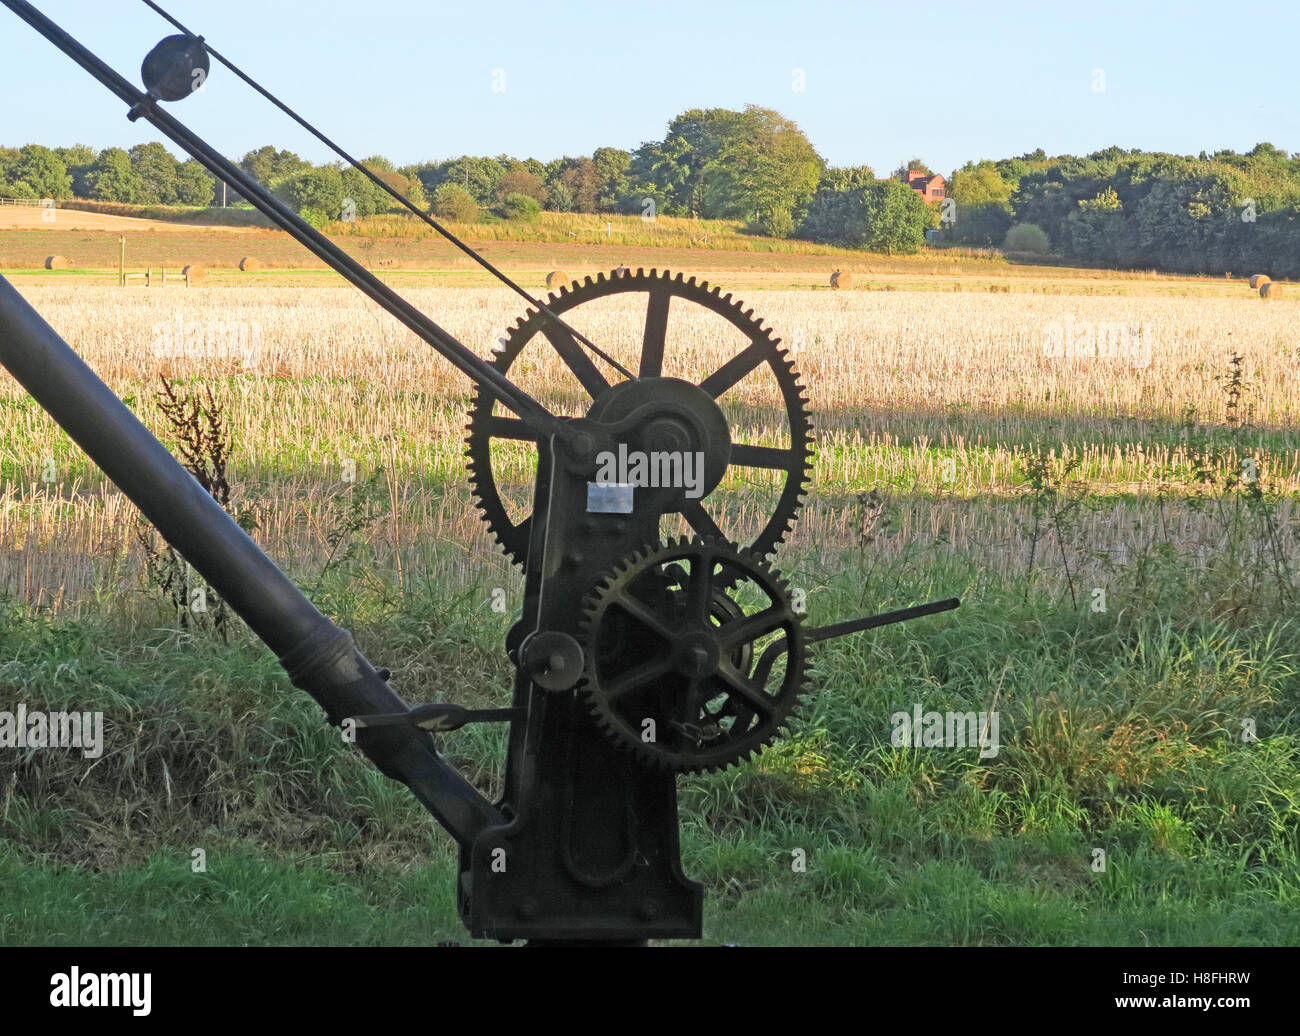 mechanism,wind,winder,winding,winch,Victorian,old,mechanical,waterway,British Waterways,canal side,canalside,cogs,cog,cable,teeth,field,summer,gear,gears,Bridgewater Canal,Cheshire,water,side,classic,rust,rusty,restored,oiled,crane,cranes,navigation,barge,barge crane,bargecrane,country,countryside,GoTonySmith,@HotpixUK,Tony,Smith,UK,GB,Great,Britain,United,Kingdom,English,British,England,Buy Pictures of,Buy Images Of,Images of,Stock Images,Tony Smith,United Kingdom,Great Britain,British Isles,Buy photo of